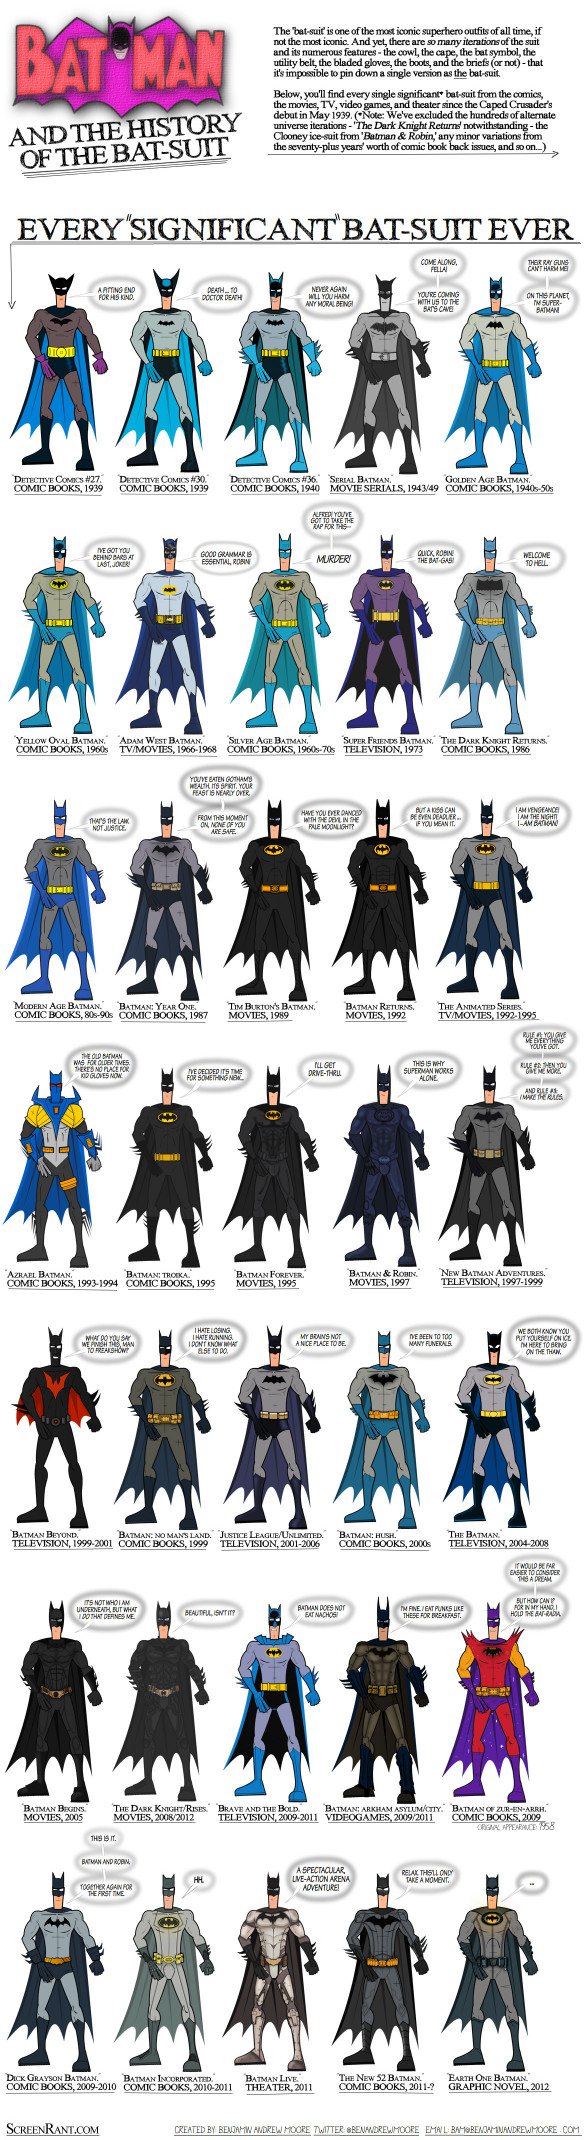 The History of the Bat Suit